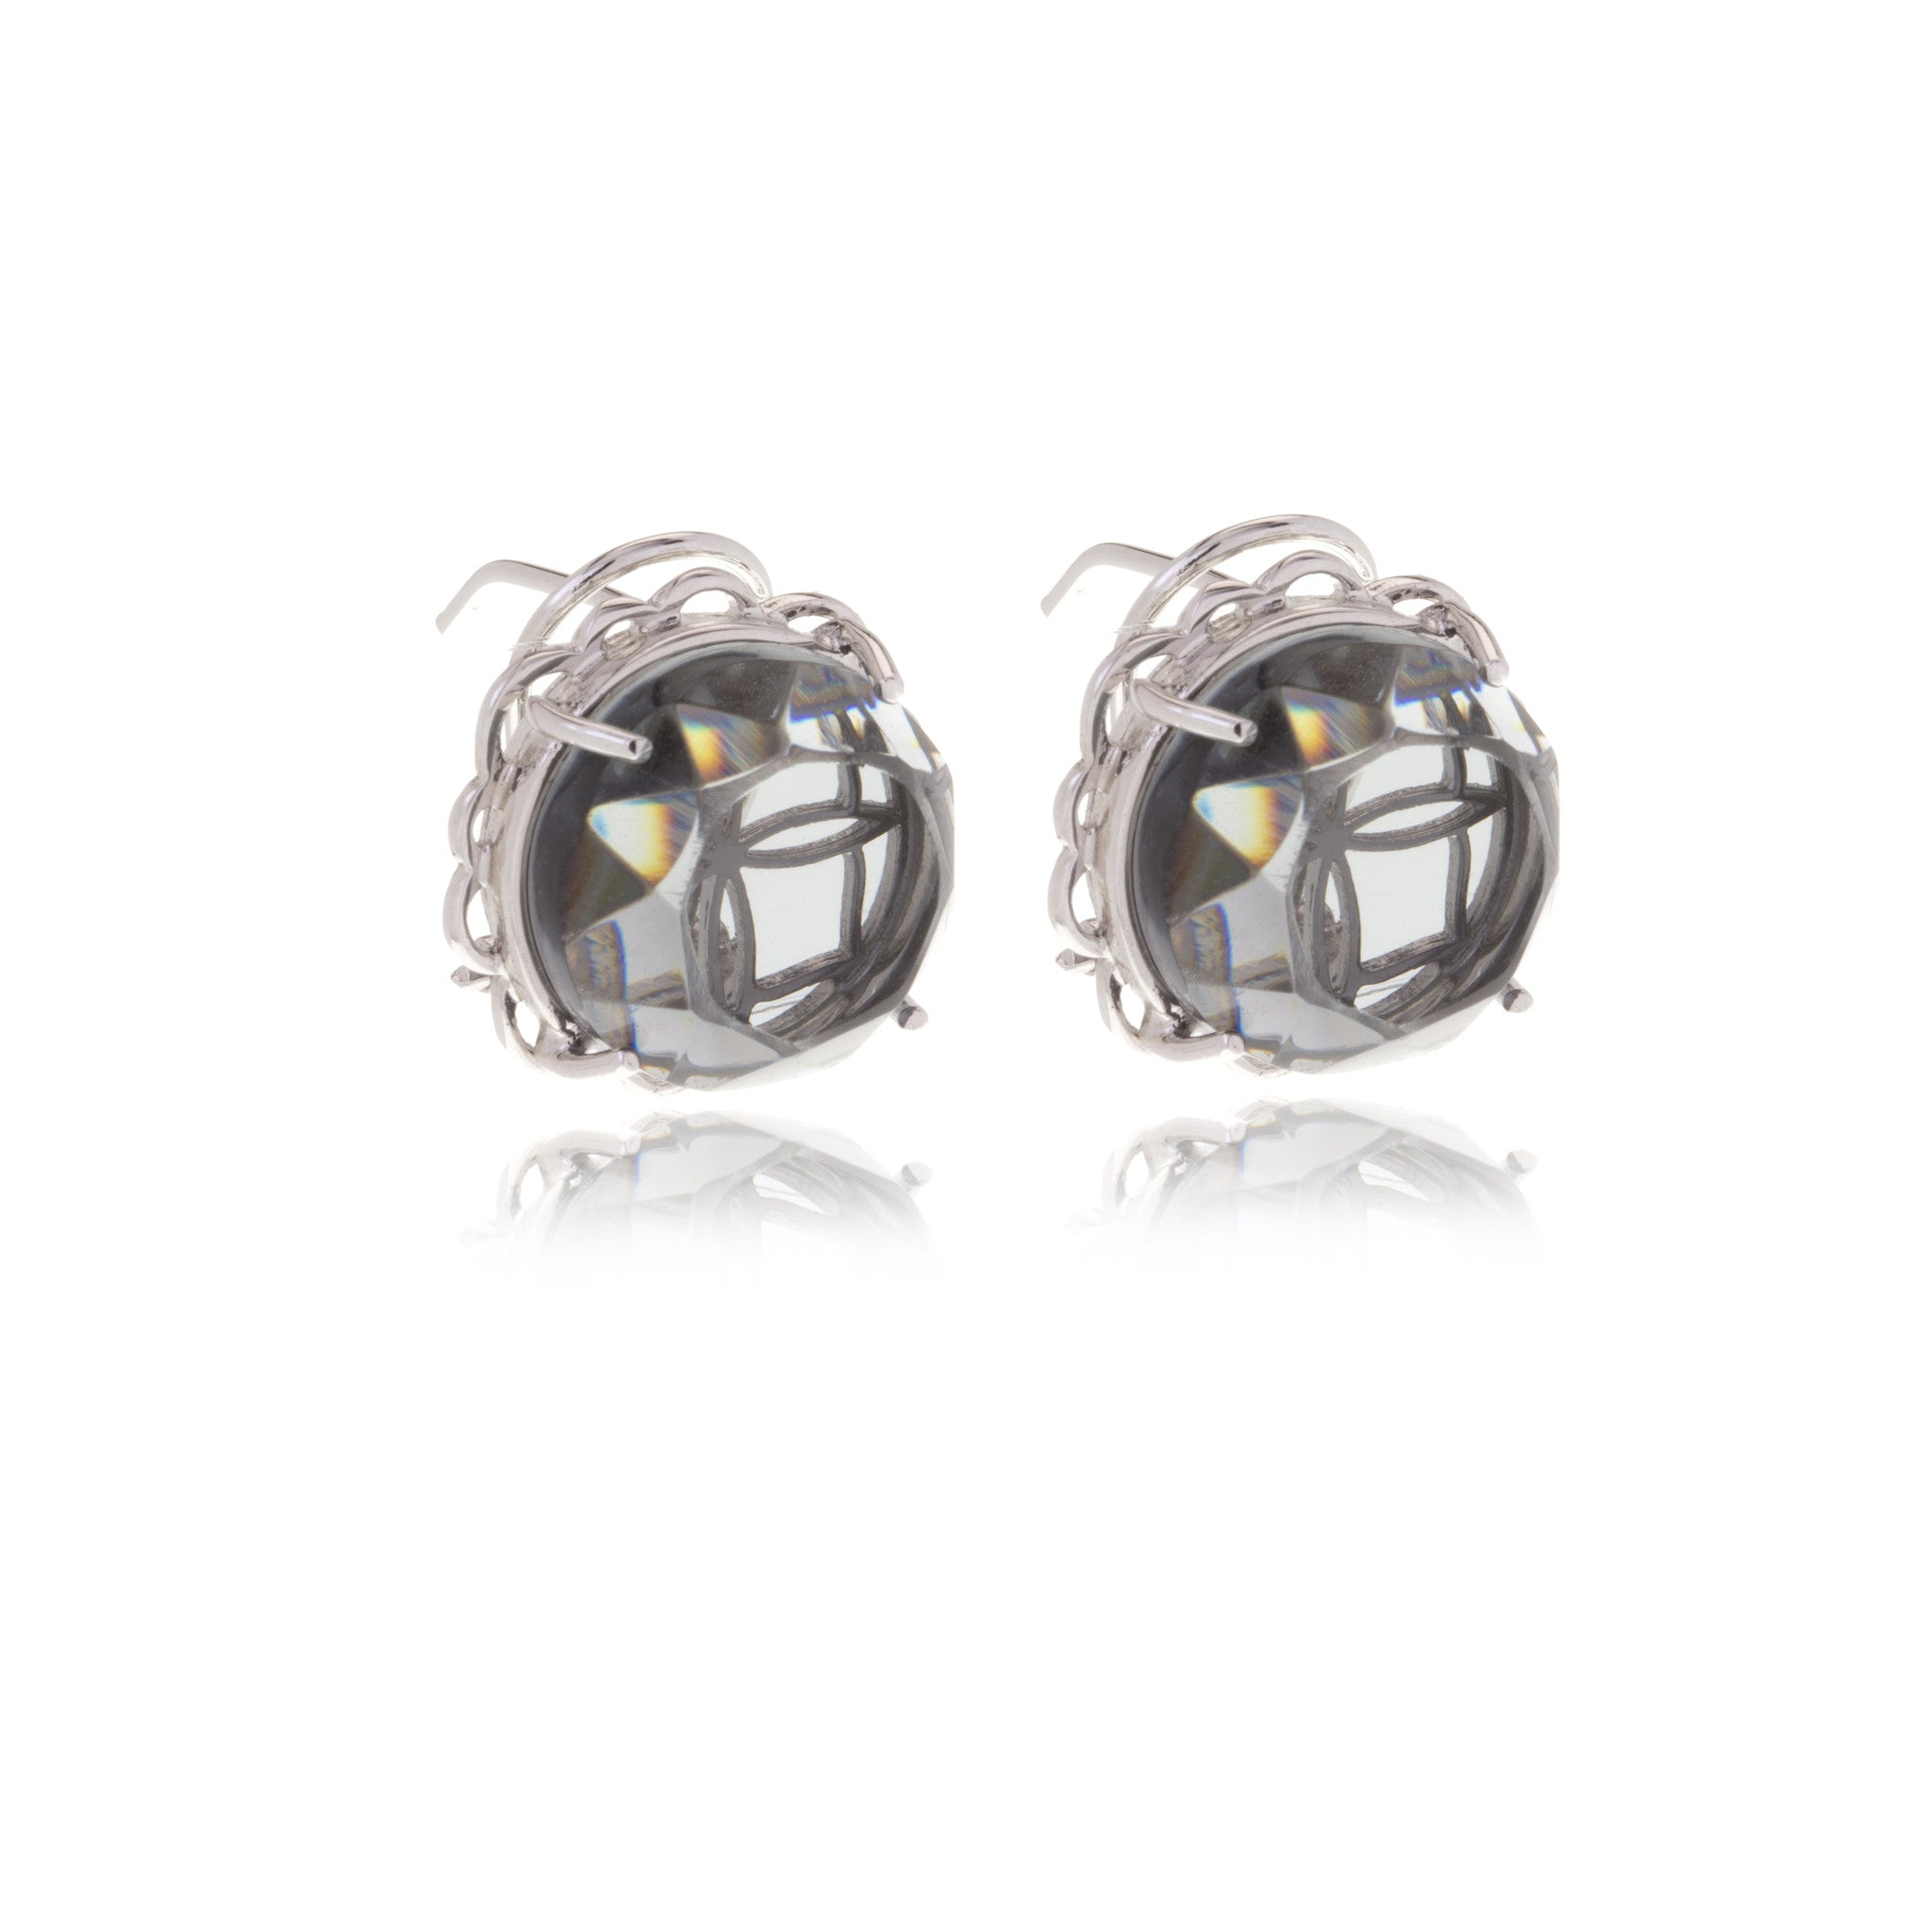 Signature Crystal Earrings - MCK Brands